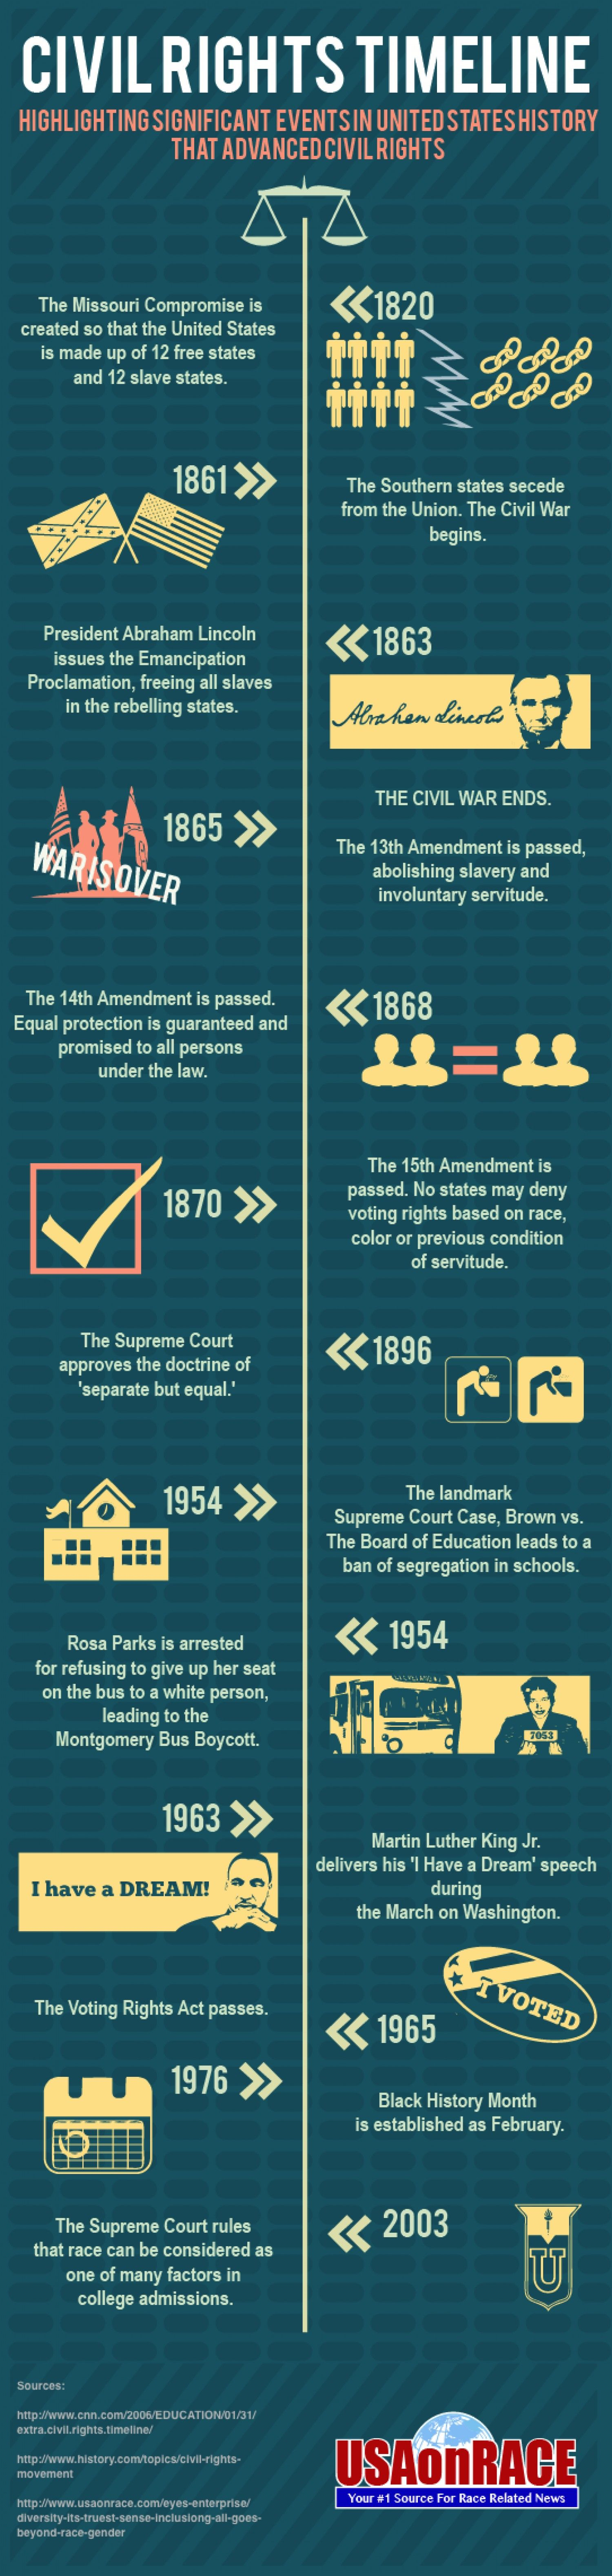 Civil Rights Timeline Infographic | Useful Classroom Images ...